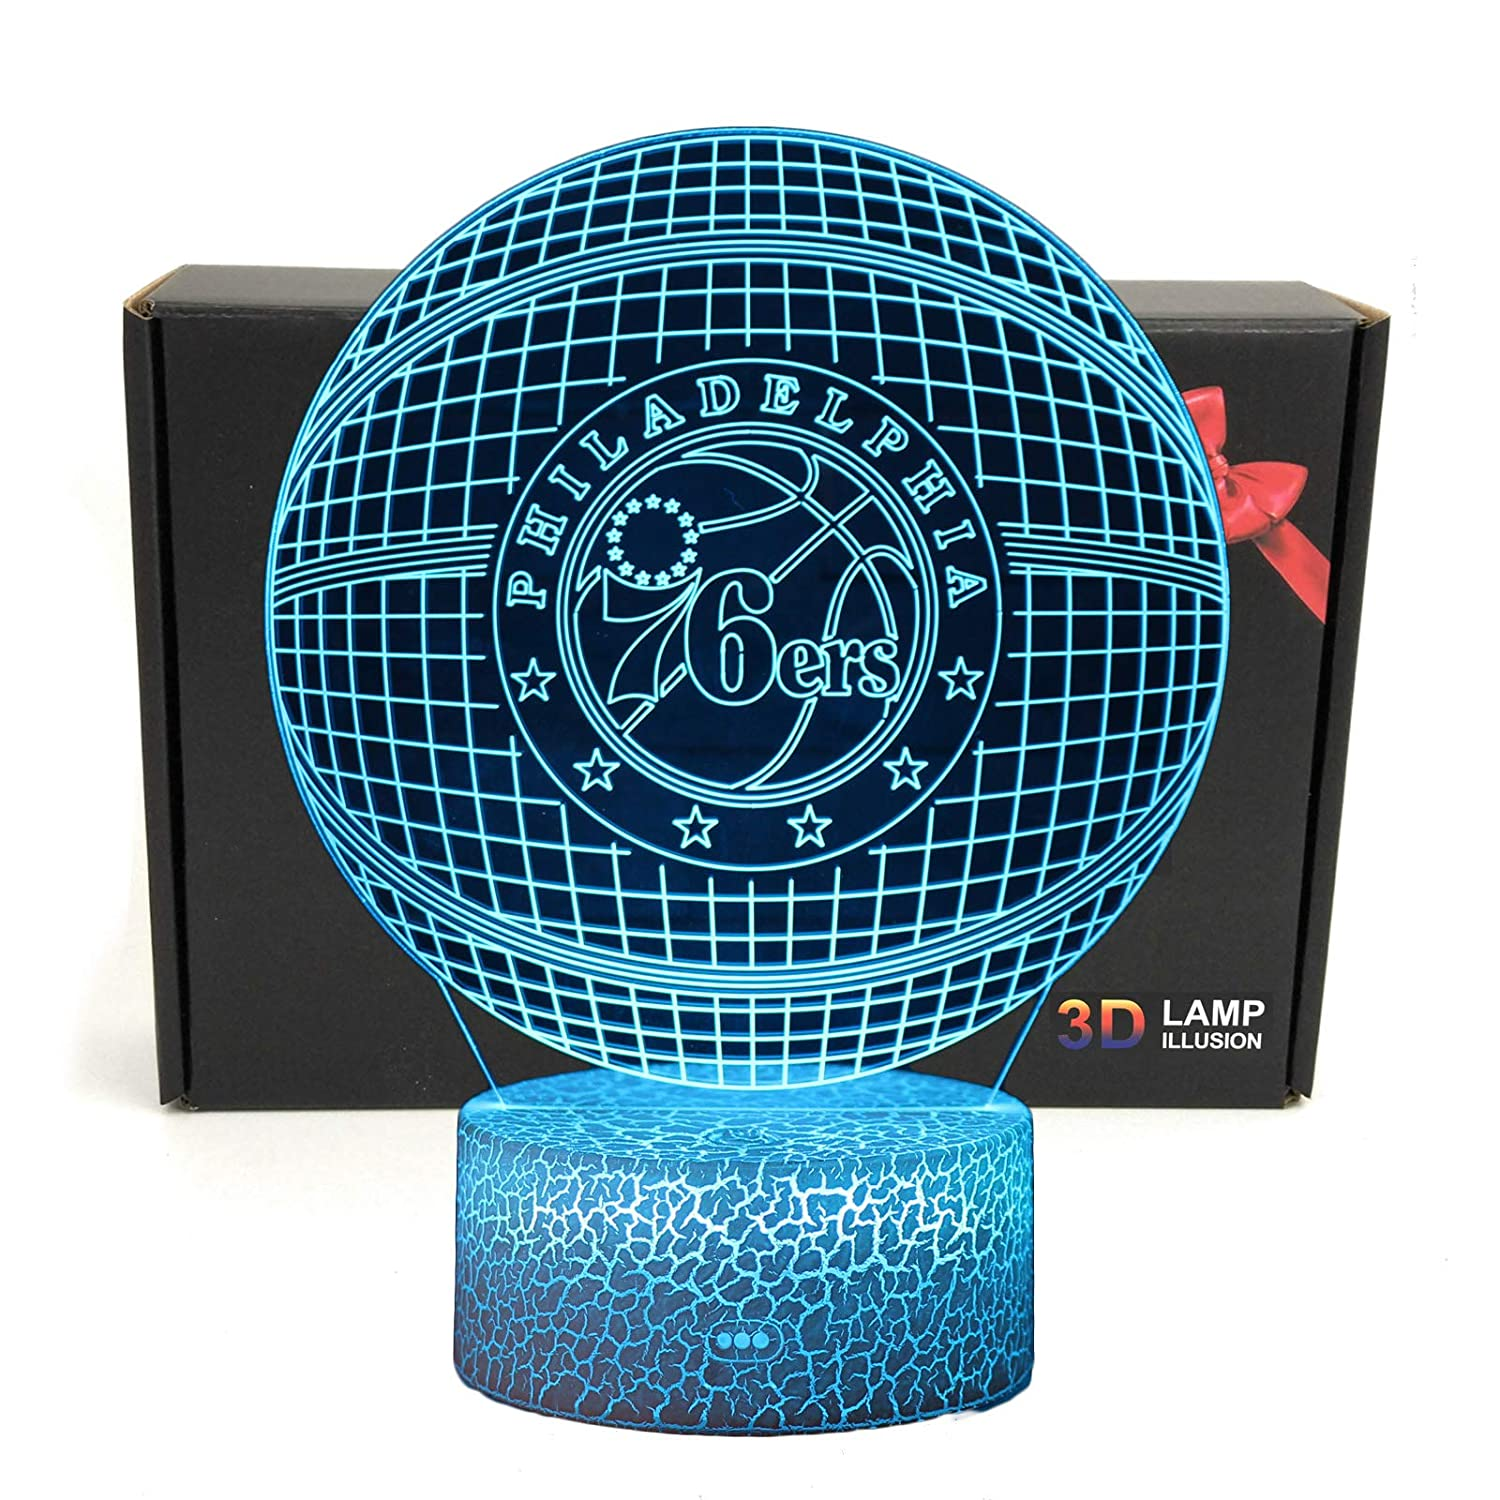 Deal Best LED NBA Team 3D Optical Illusion Smart 7 Colors Night Light Table Lamp with USB Power Cable 76ERS